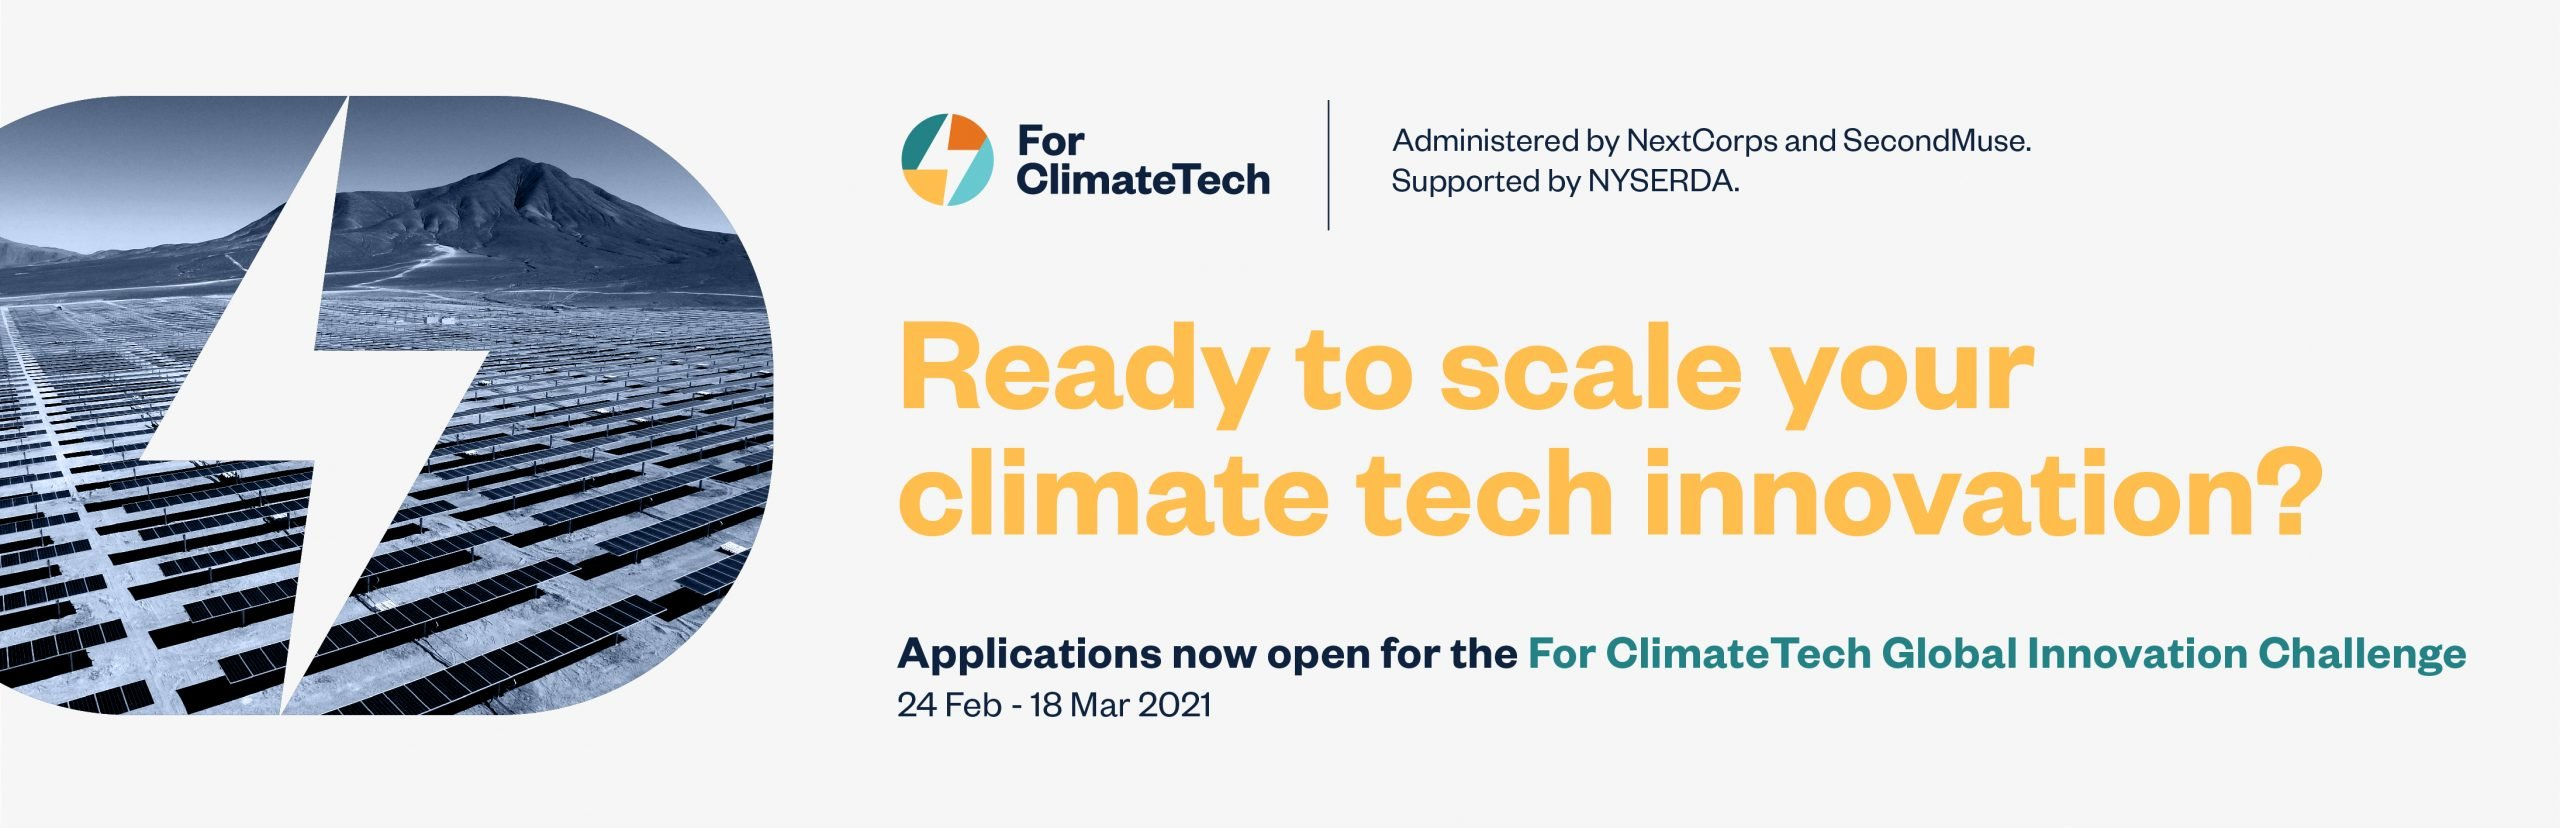 For ClimateTech_Global Innovation Challenge_web banner (4)